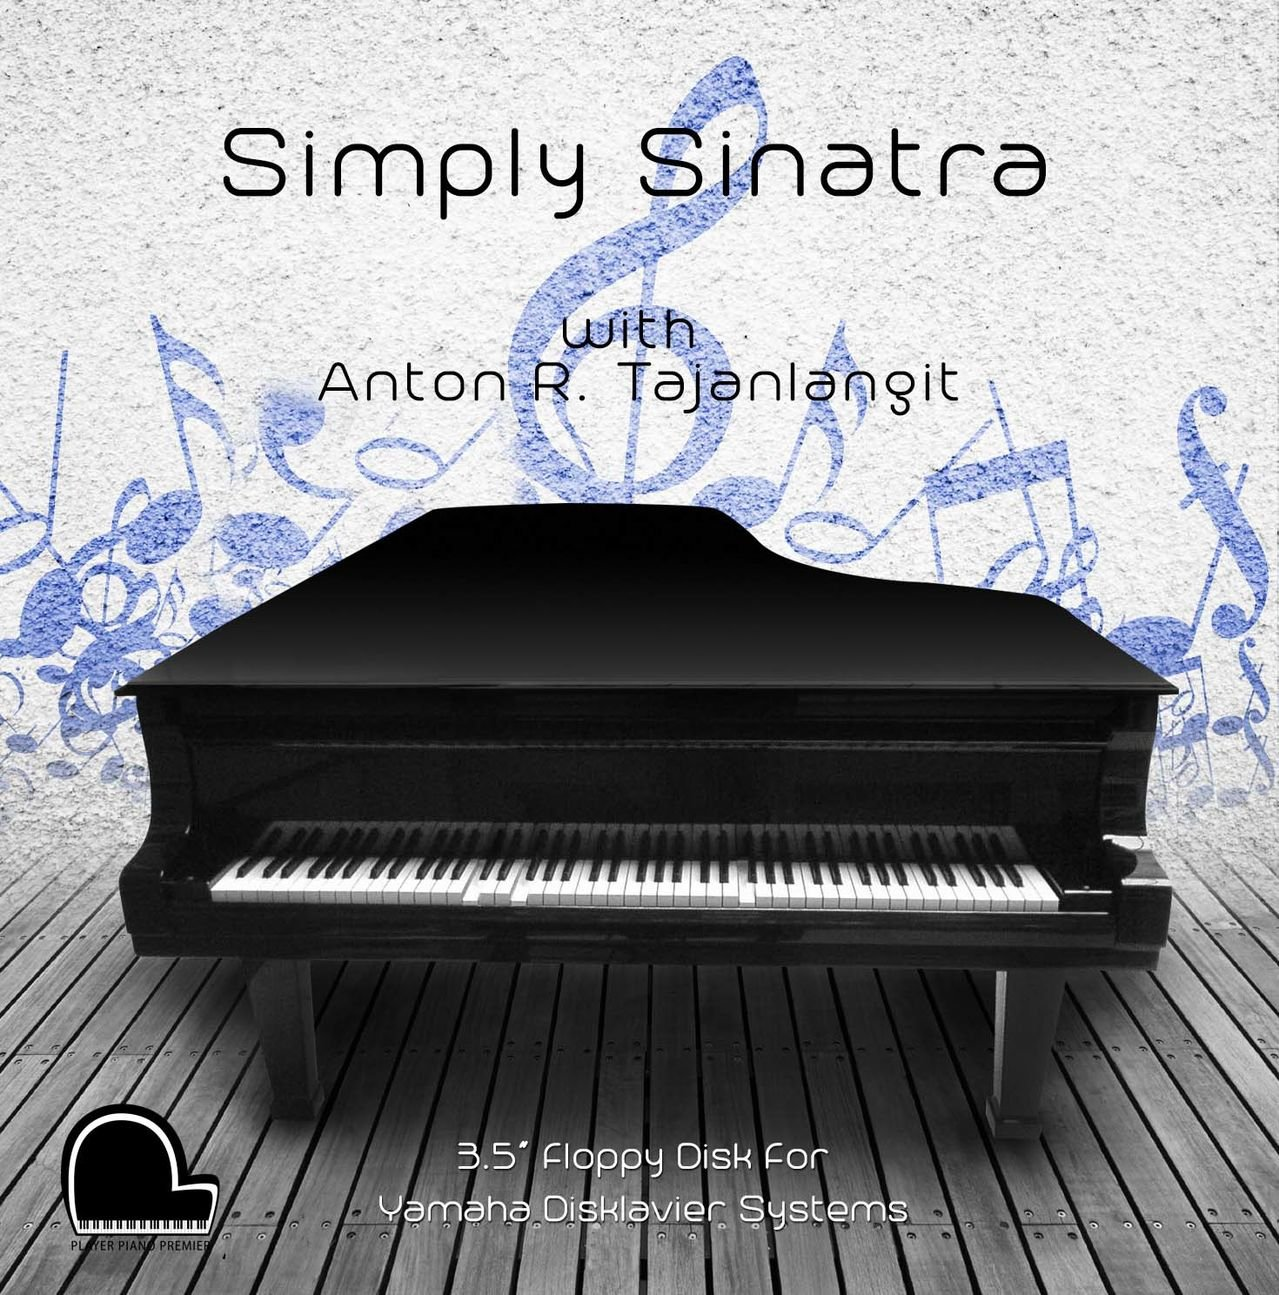 Simply Sinatra - Yamaha Disklavier Compatible Player Piano Music on 3.5'' DD 720k Floppy Disk